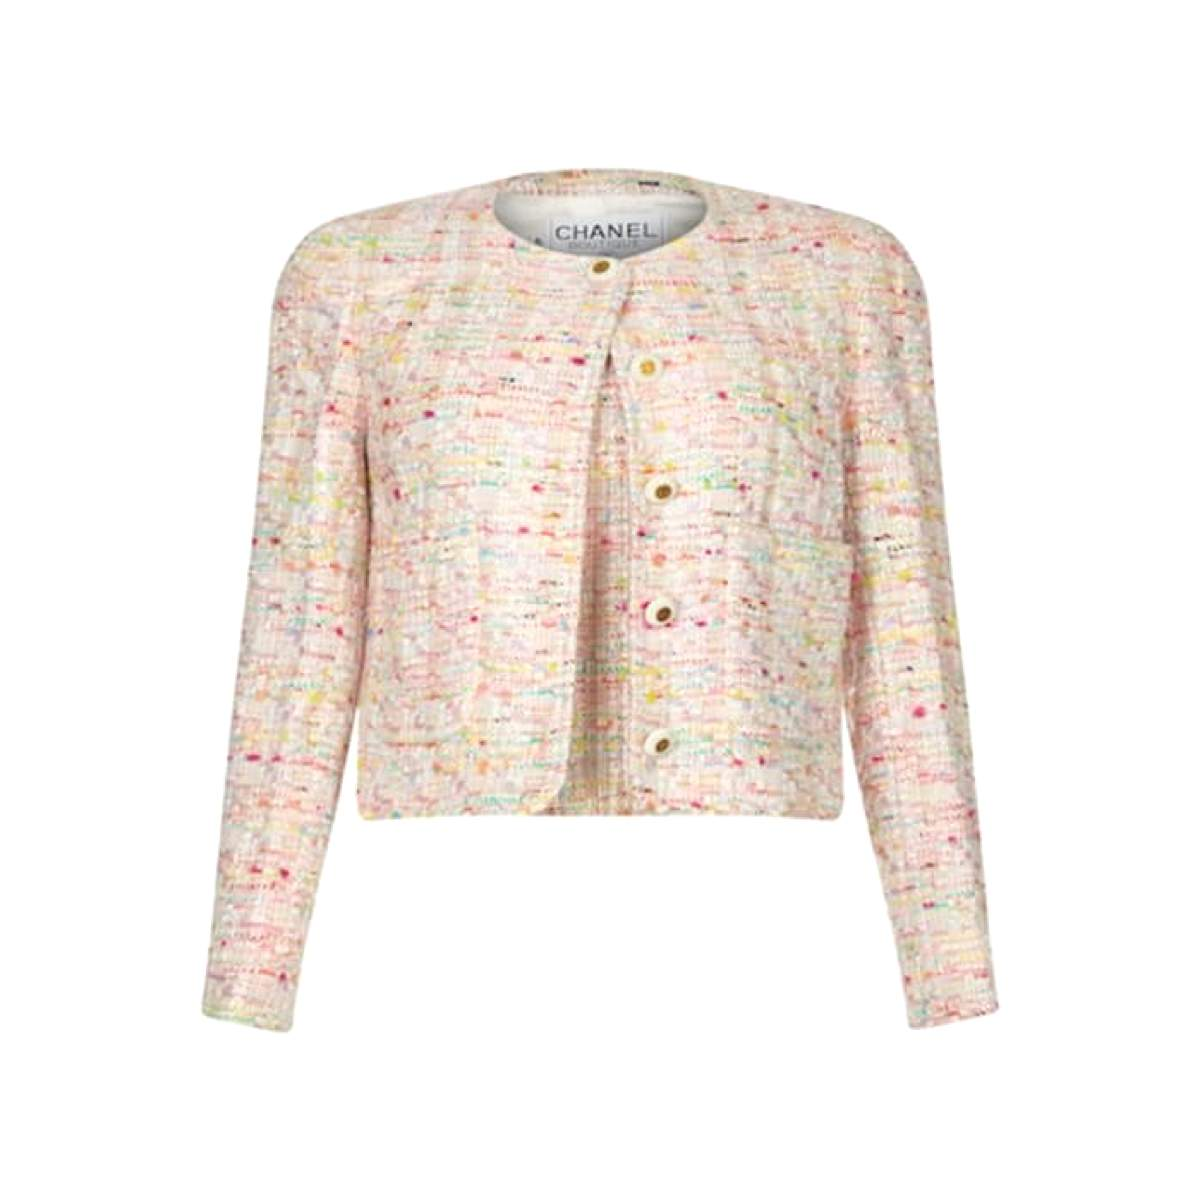 Chanel 1990s tweed set in pastel shades